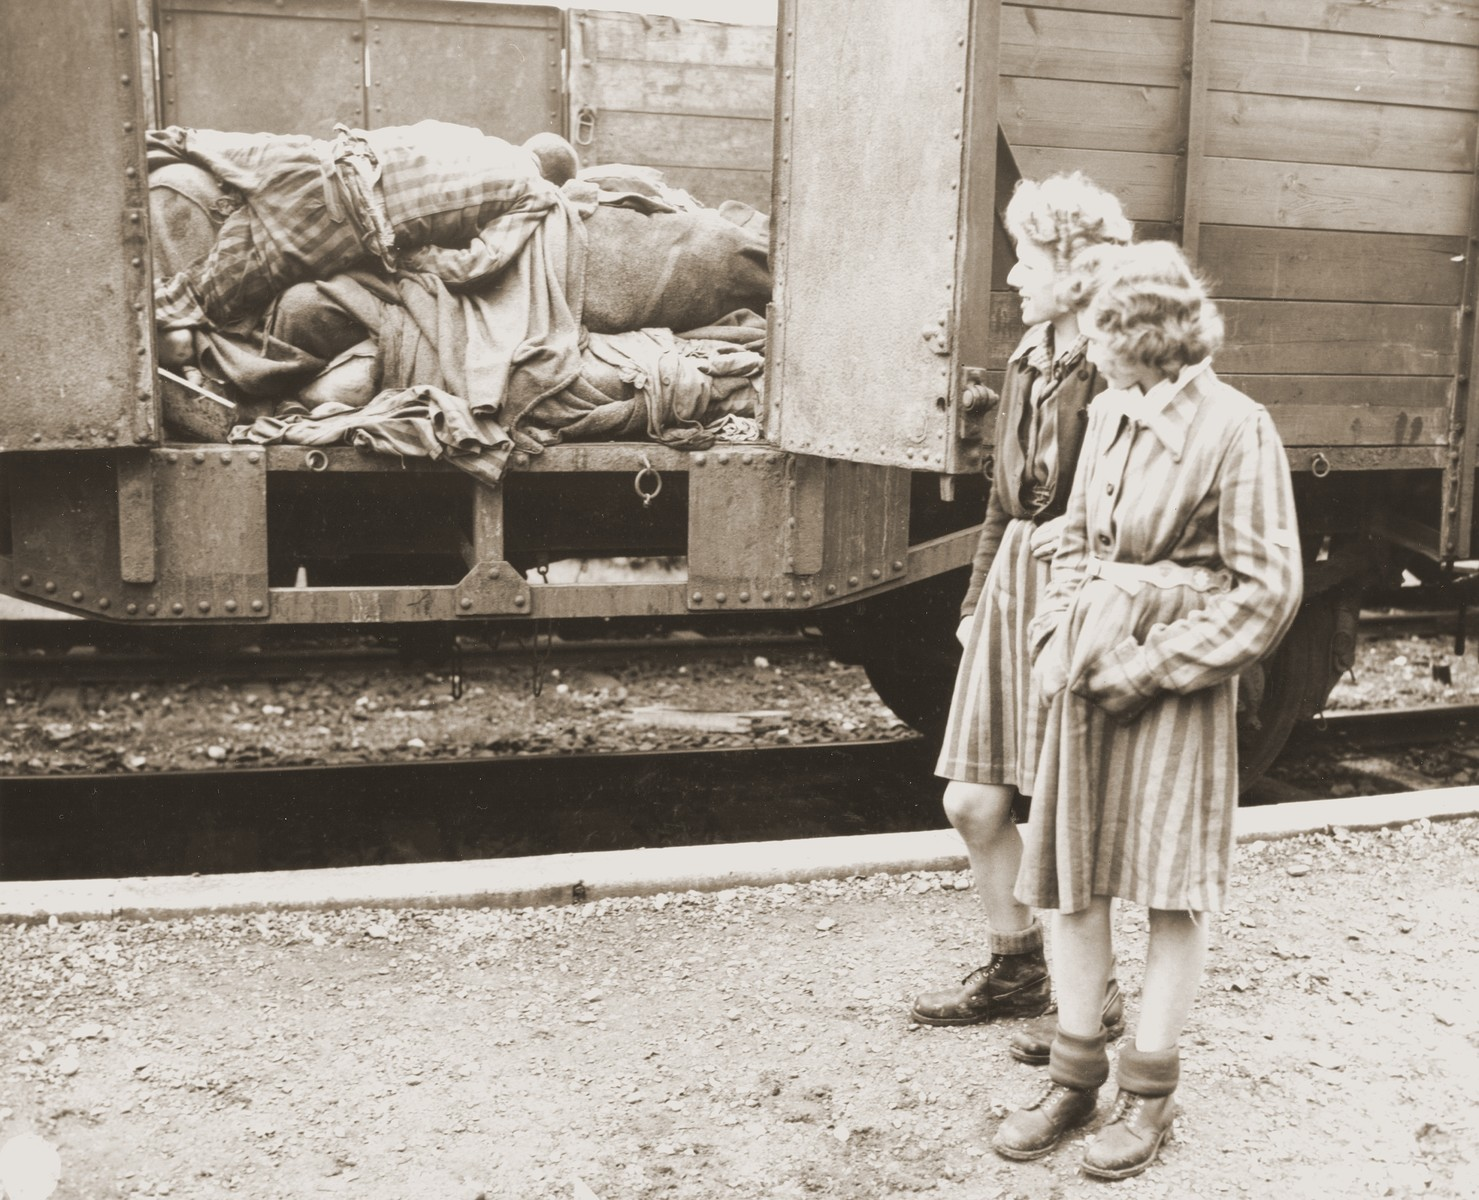 Two Jewish girls stand before a train car laden with the bodies of prisoners who died while on an evacuation transport presumably headed for Dachau concentration camp.